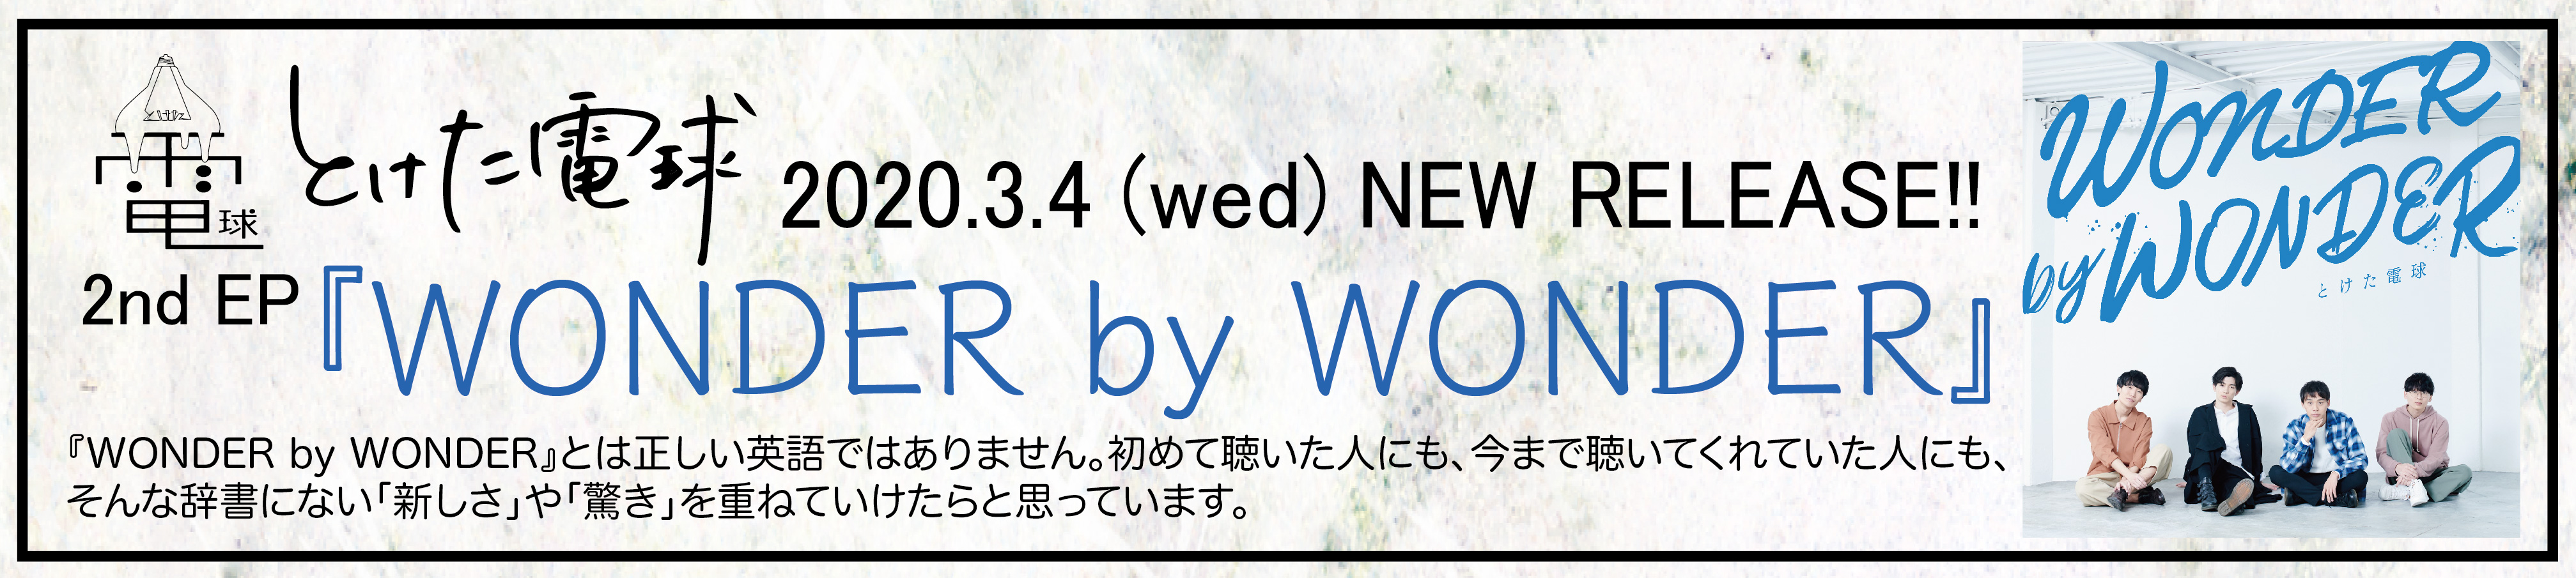 とけた電球 2020.3.4(wed)NEW RELEASE!! 2nd EP 「WONDER by WONDER」